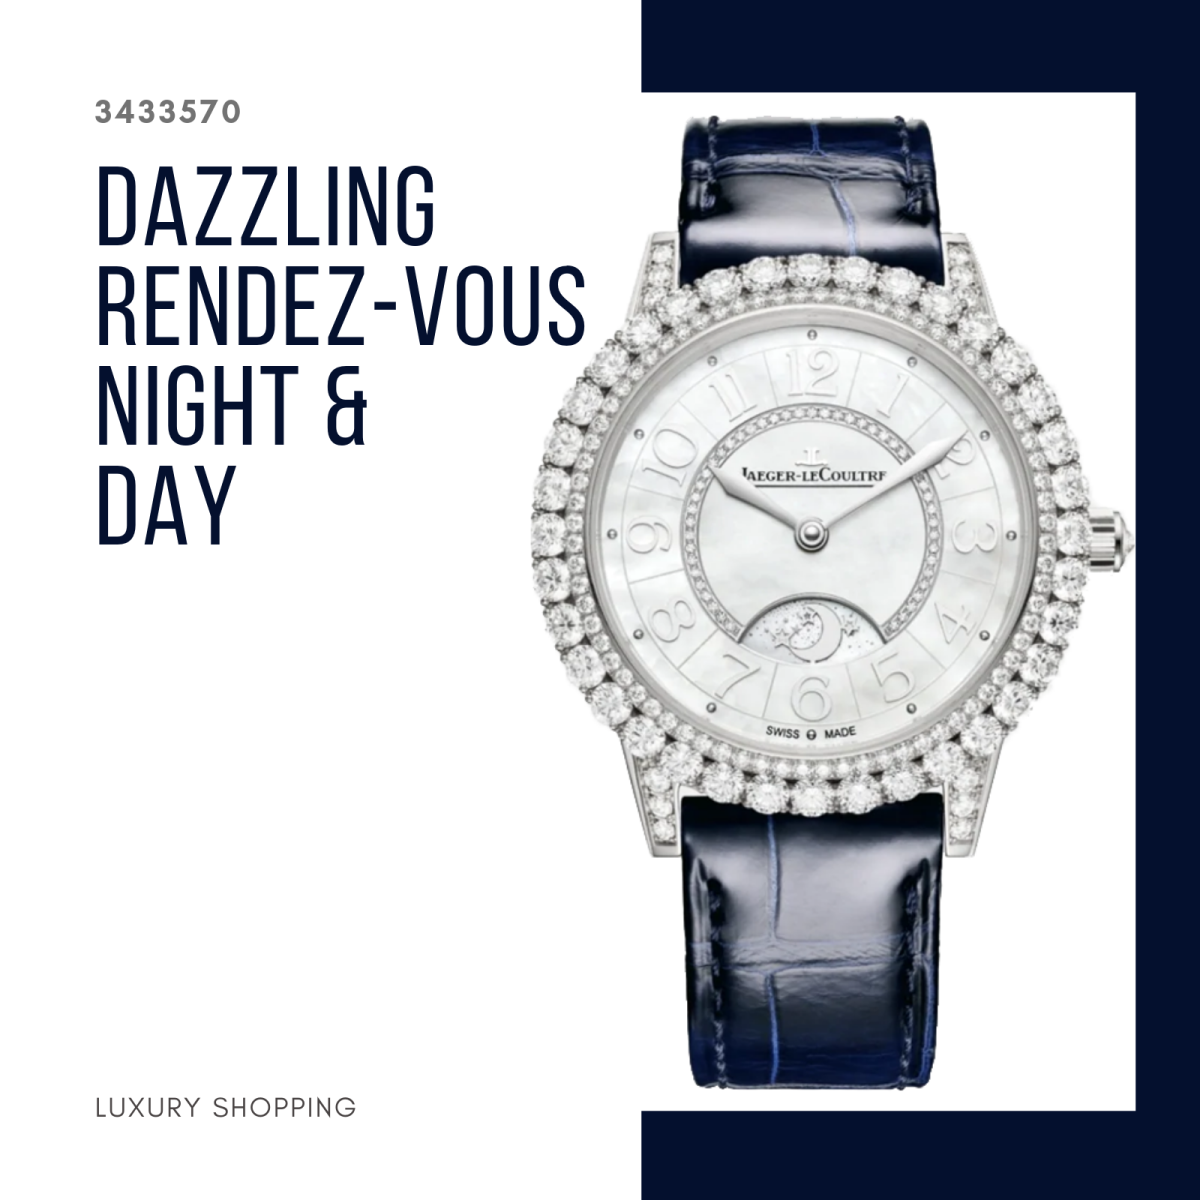 đồng hồ nữ Jaeger-LeCoultre 3433570 Dazzling Rendez-Vous Night & Day